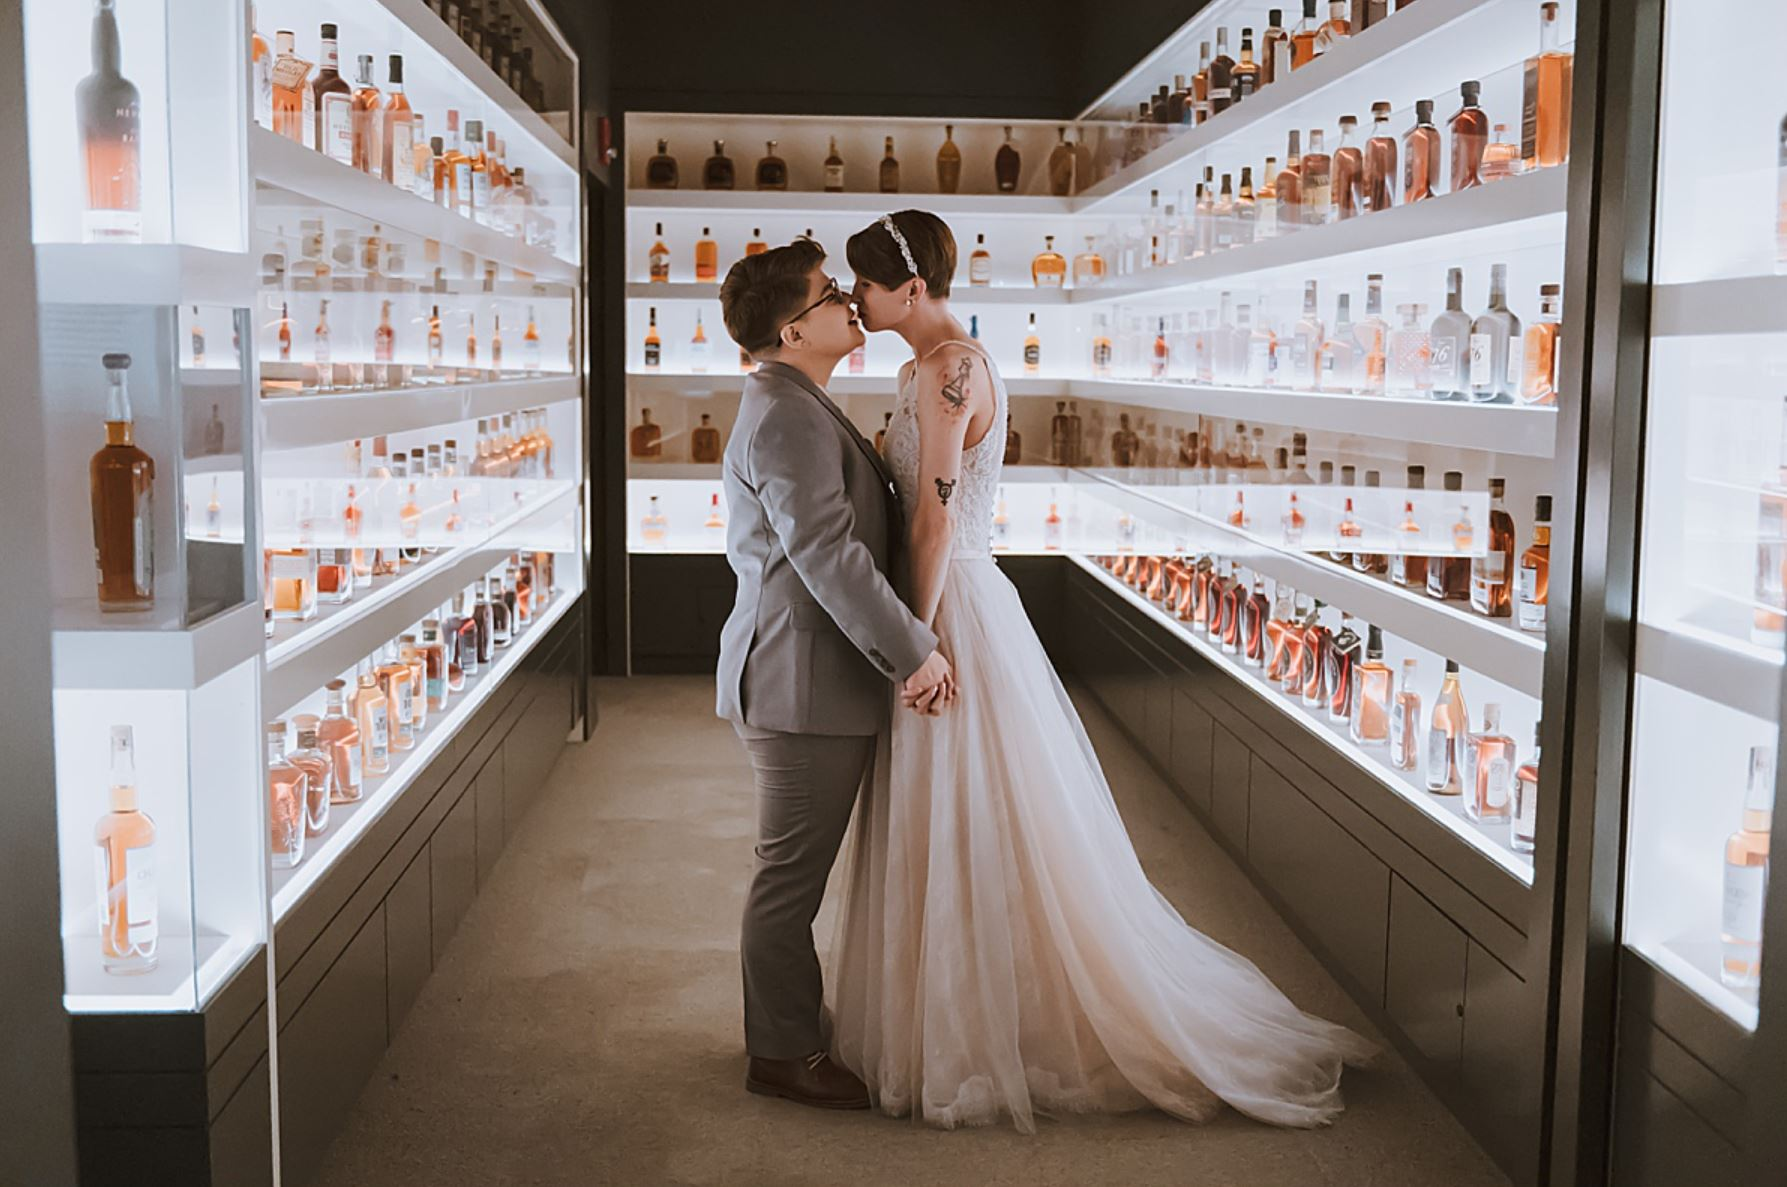 A wedding couple is kissing each other at the Francier HIstory Museum.